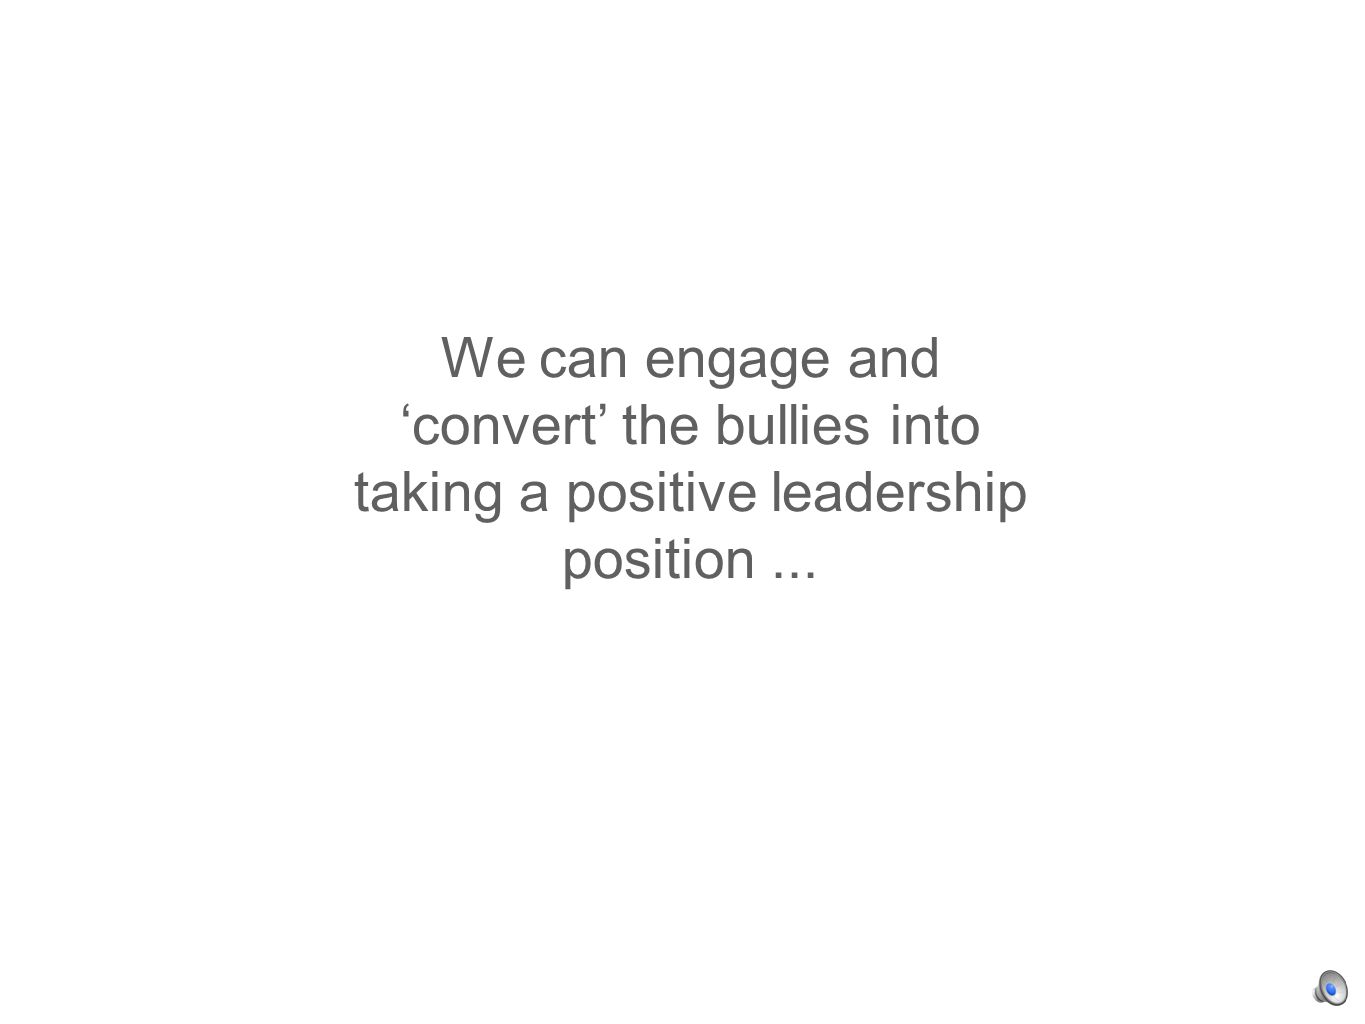 We can engage and convert the bullies into taking a positive leadership position...